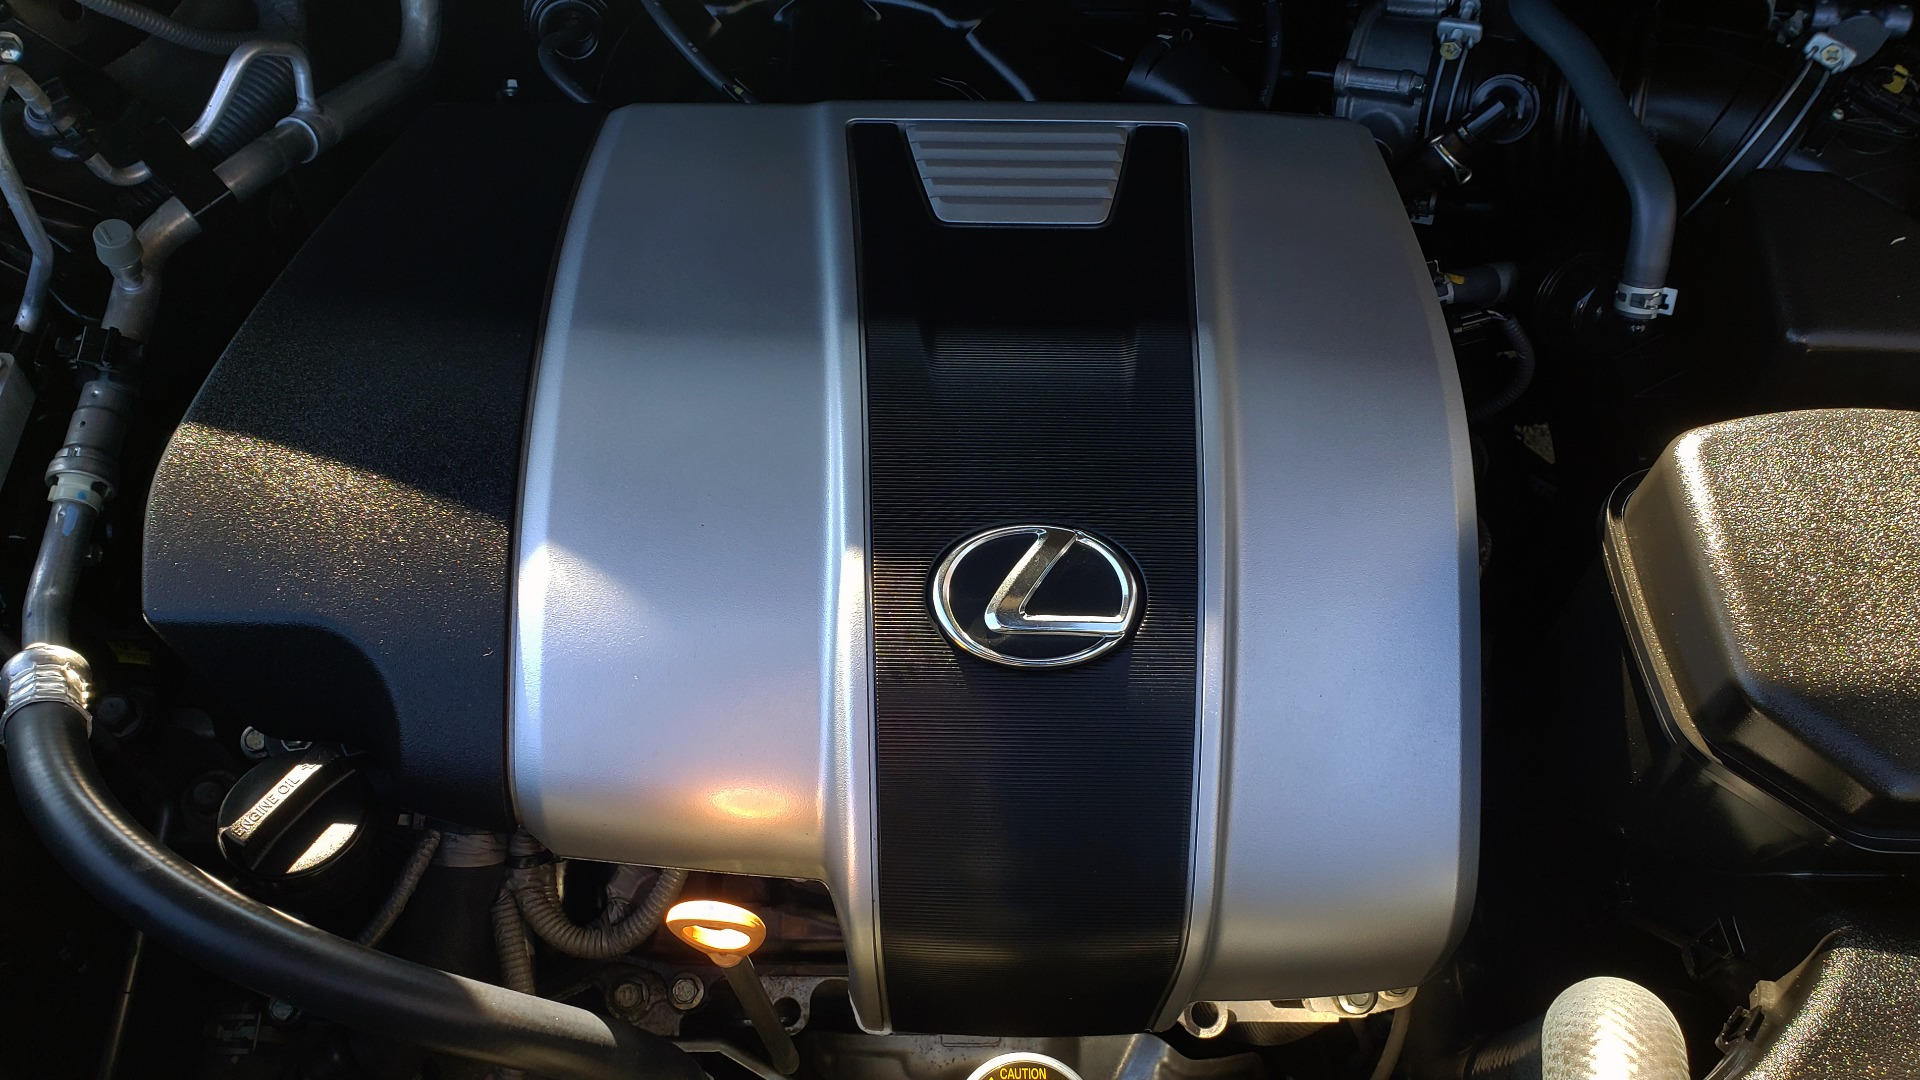 Used 2017 Lexus RX350 AWD F-SPORT / NAV / SUNROOF / BSM / PARK ASST / TOWING / REARVIE for sale Sold at Formula Imports in Charlotte NC 28227 17